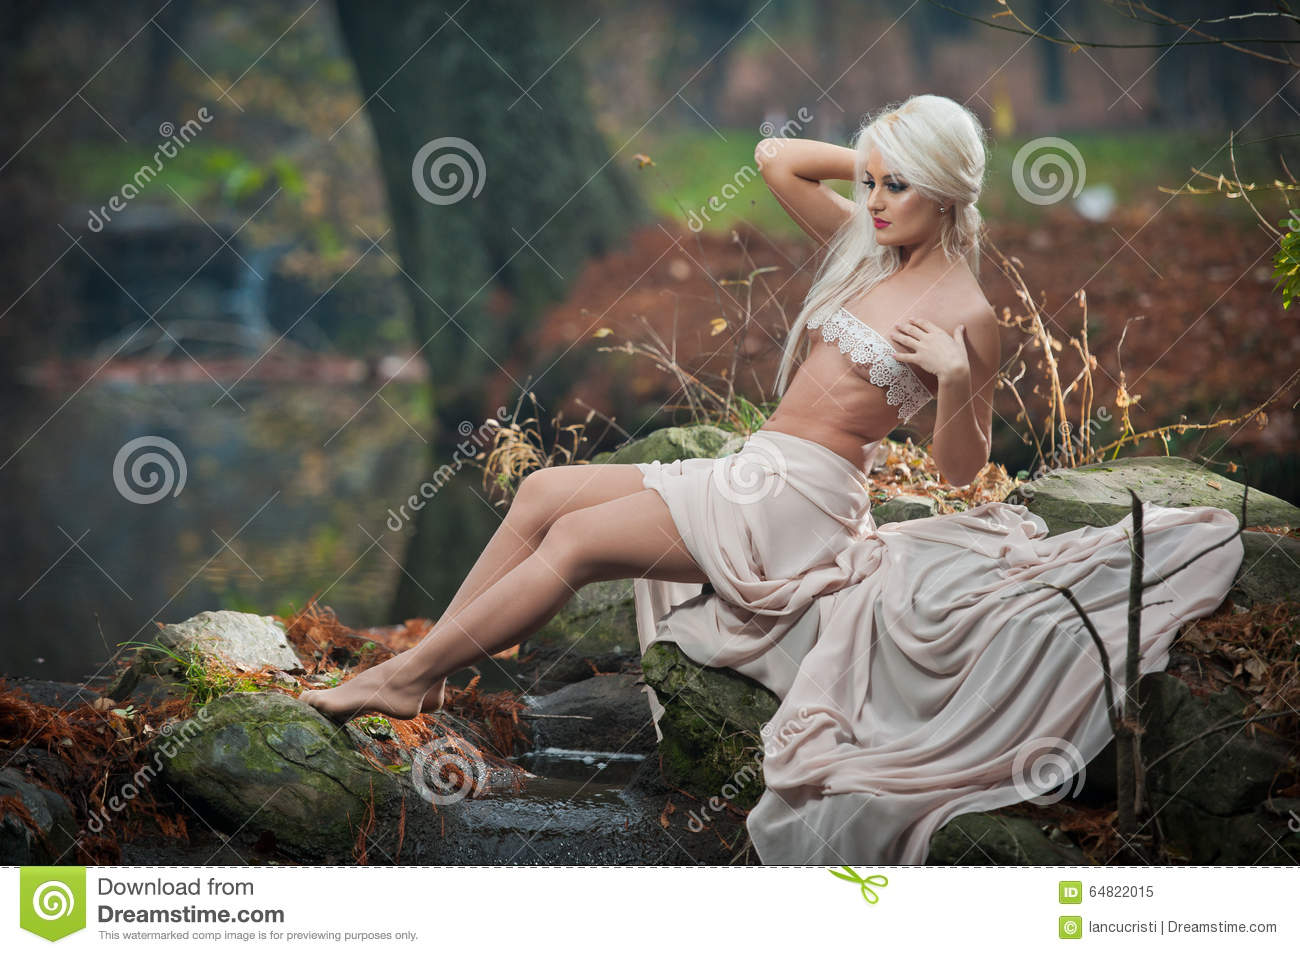 Are not sensual lady in woods